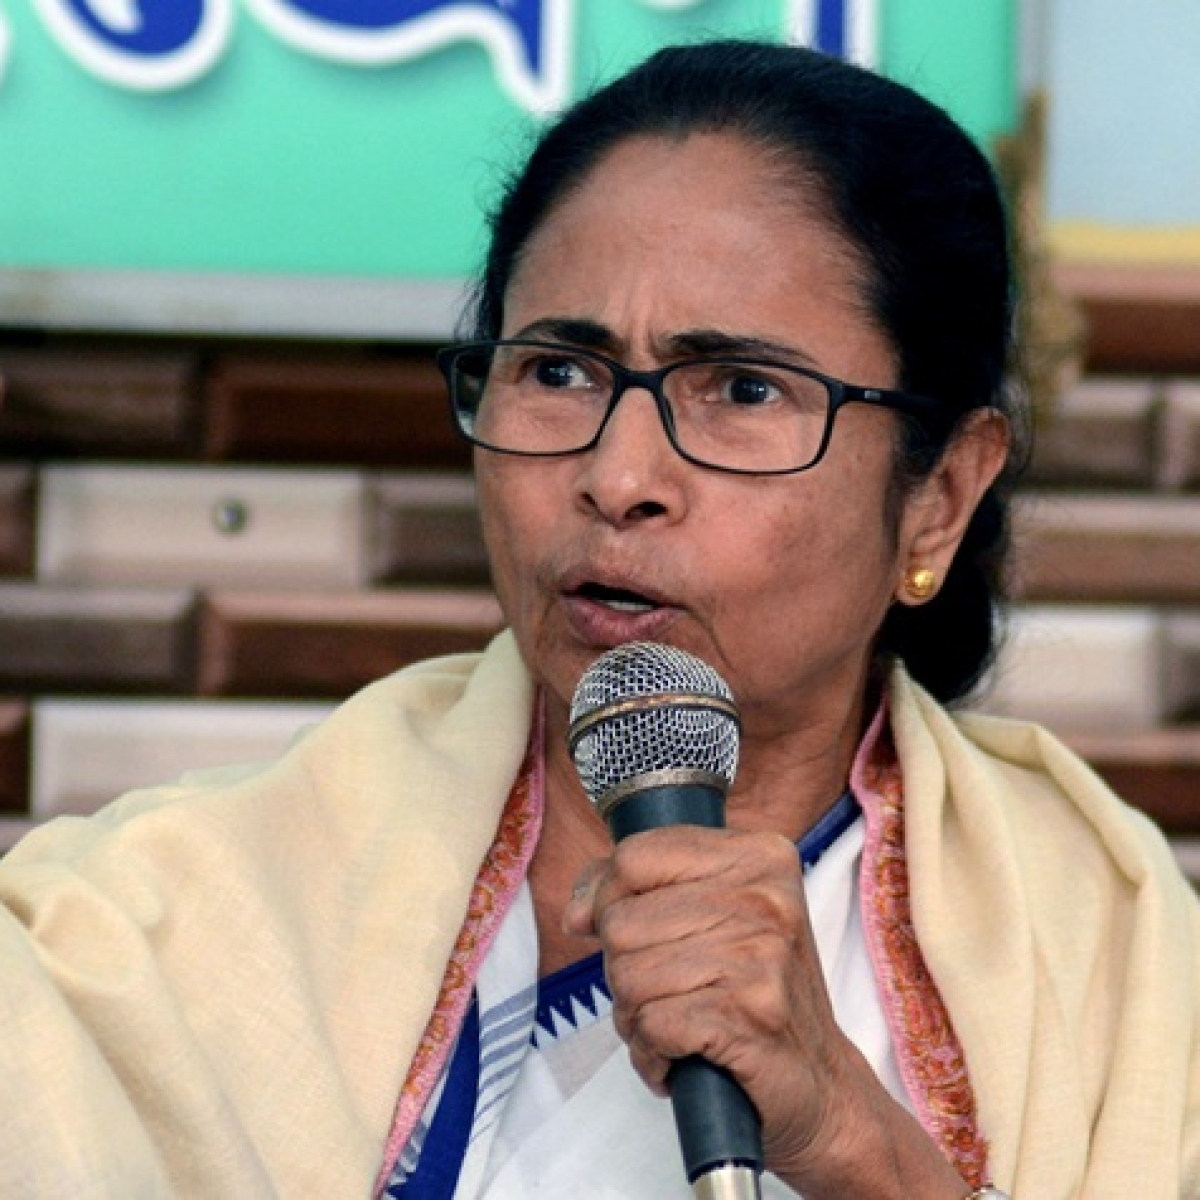 'Chalk out a plan to save the country': Mamata Banerjee writes to CMs, leaders of oppn parties on CAA